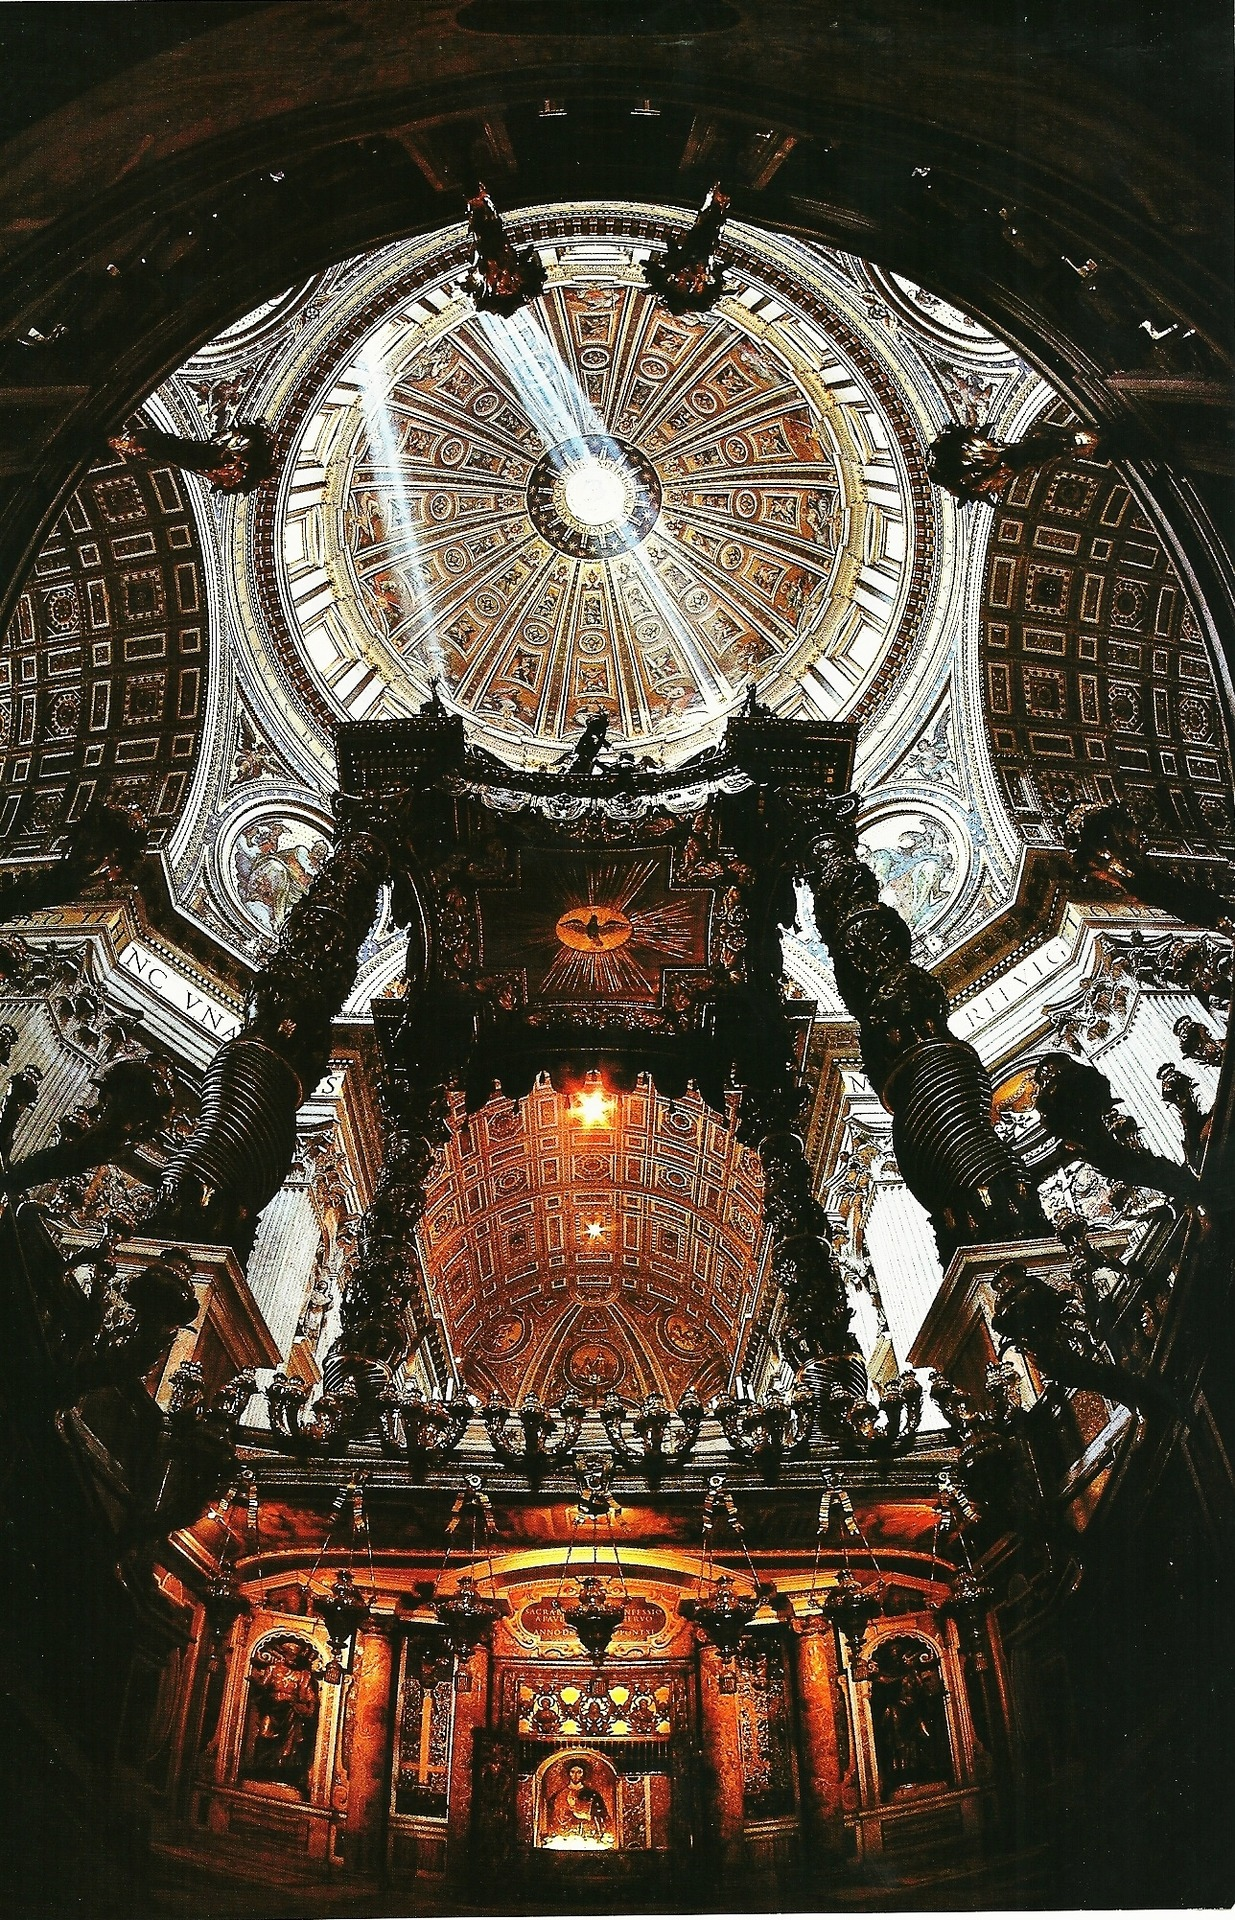 vintagenatgeographic:  Inside of the Basilica of St. Peter at Vatican City National Geographic | December 1985